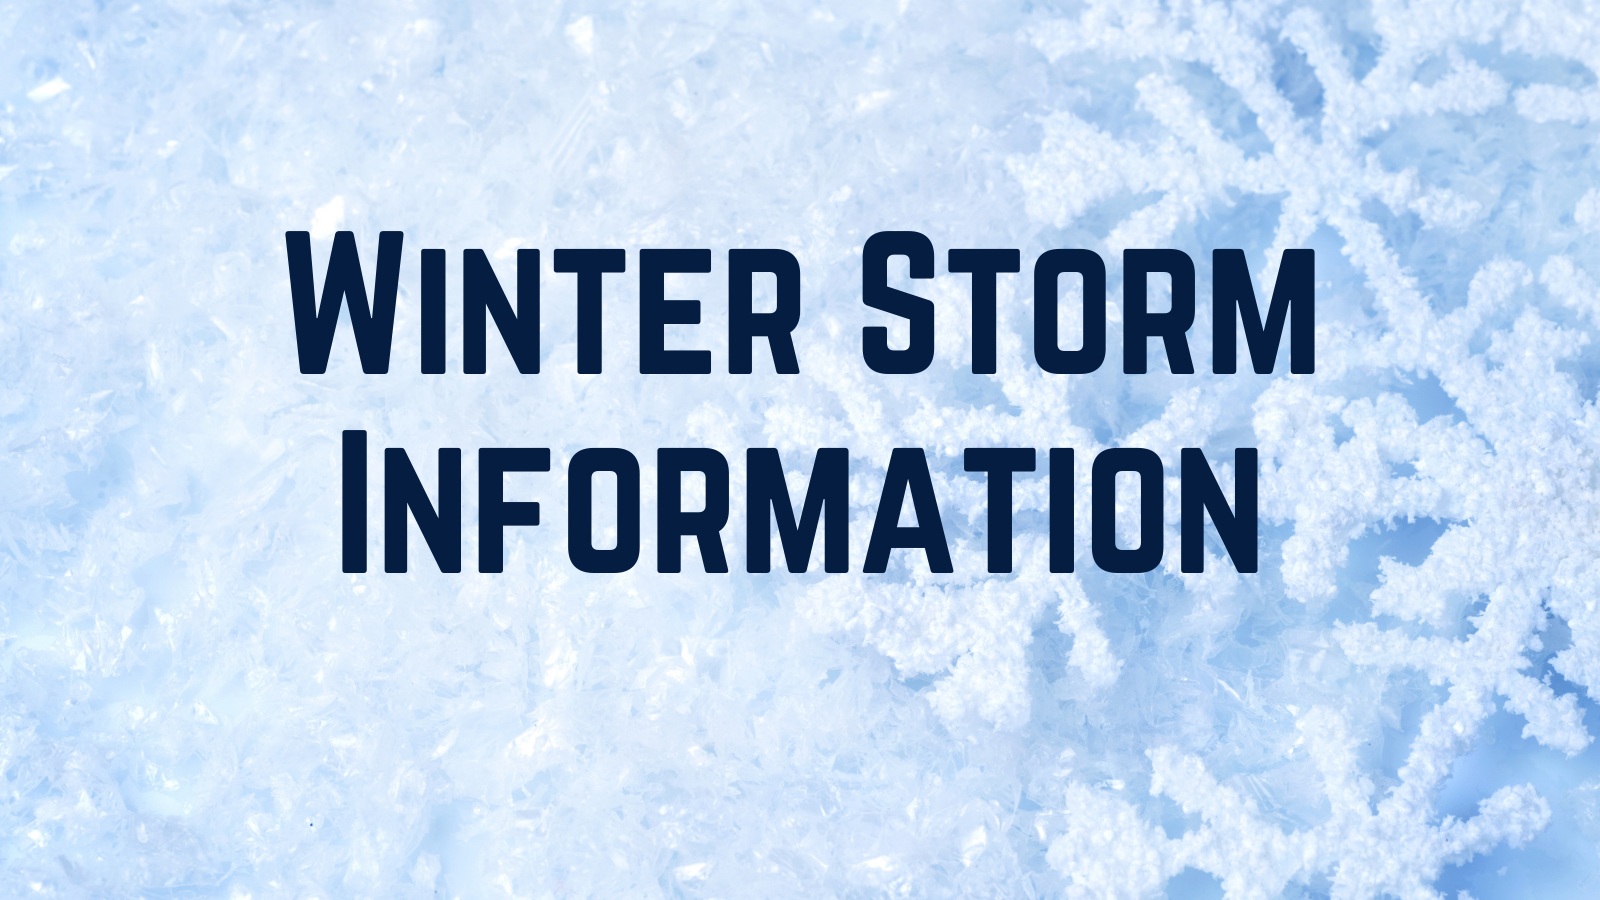 FPS: Winter Storm Update: Storm still in process, decision Tuesday about 5:30 AM